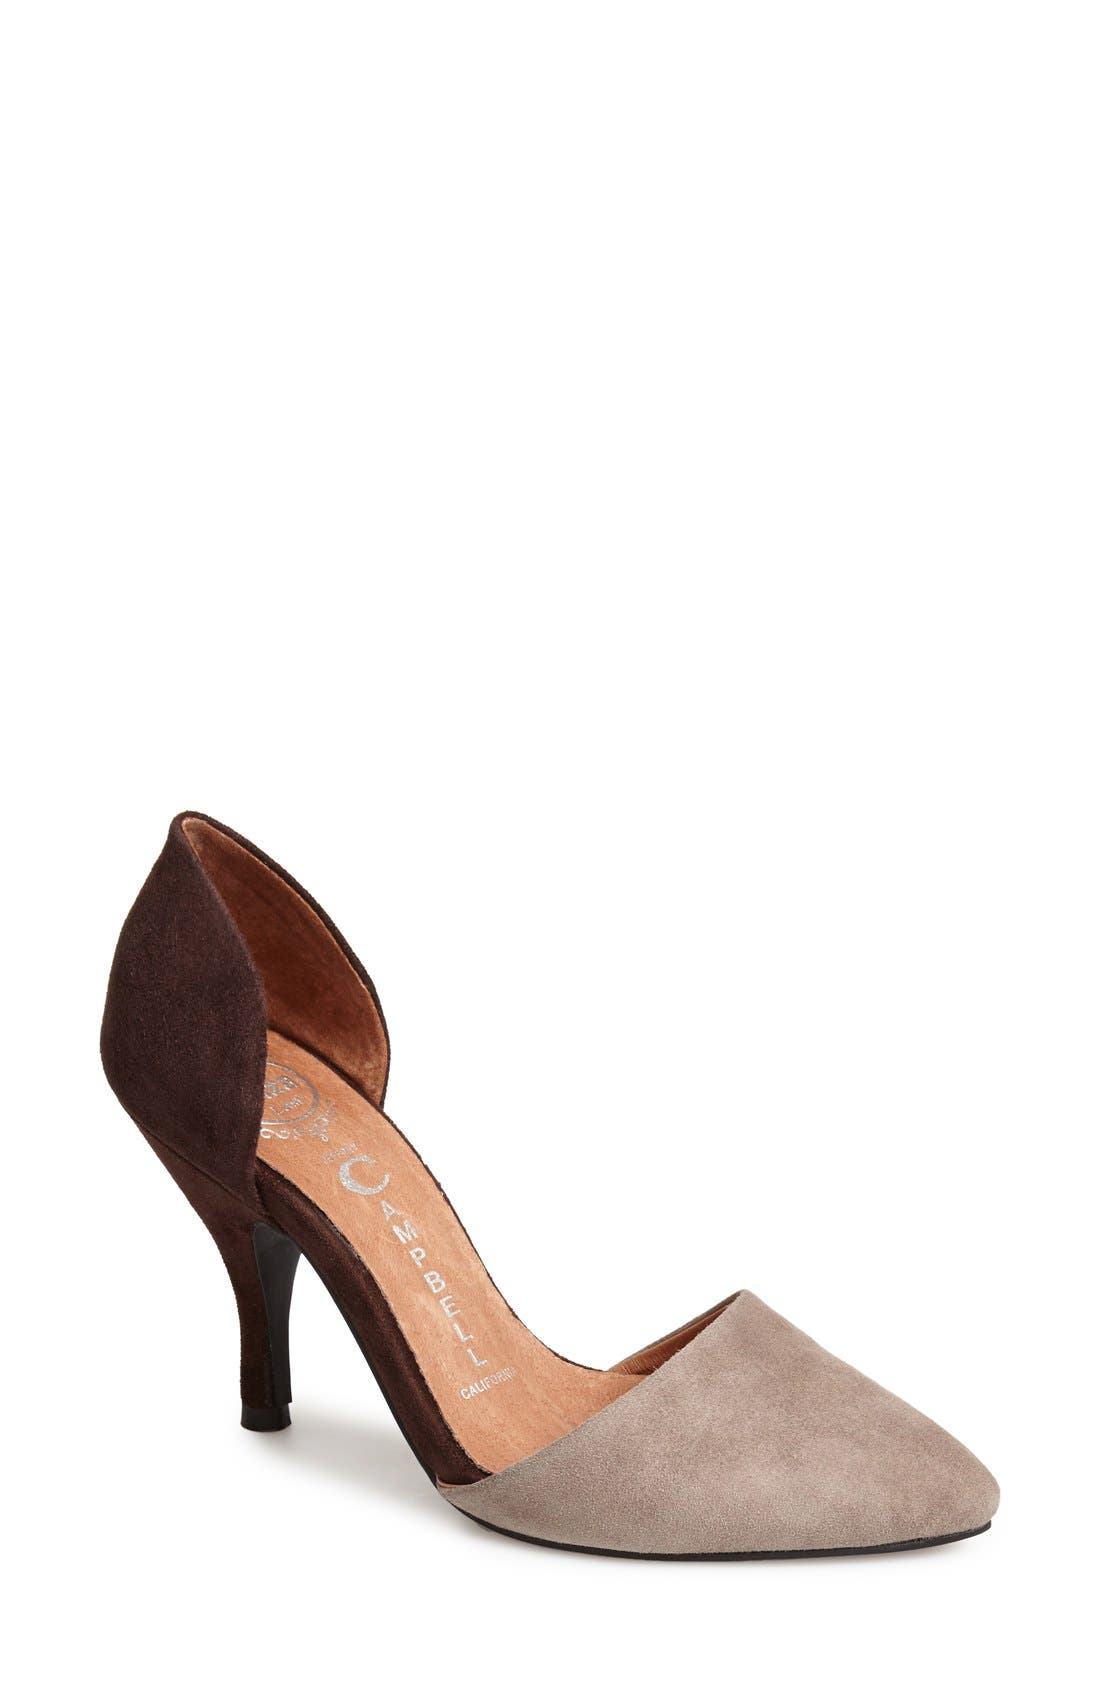 Alternate Image 1 Selected - Jeffrey Campbell 'Calista' d'Orsay Pump (Women)